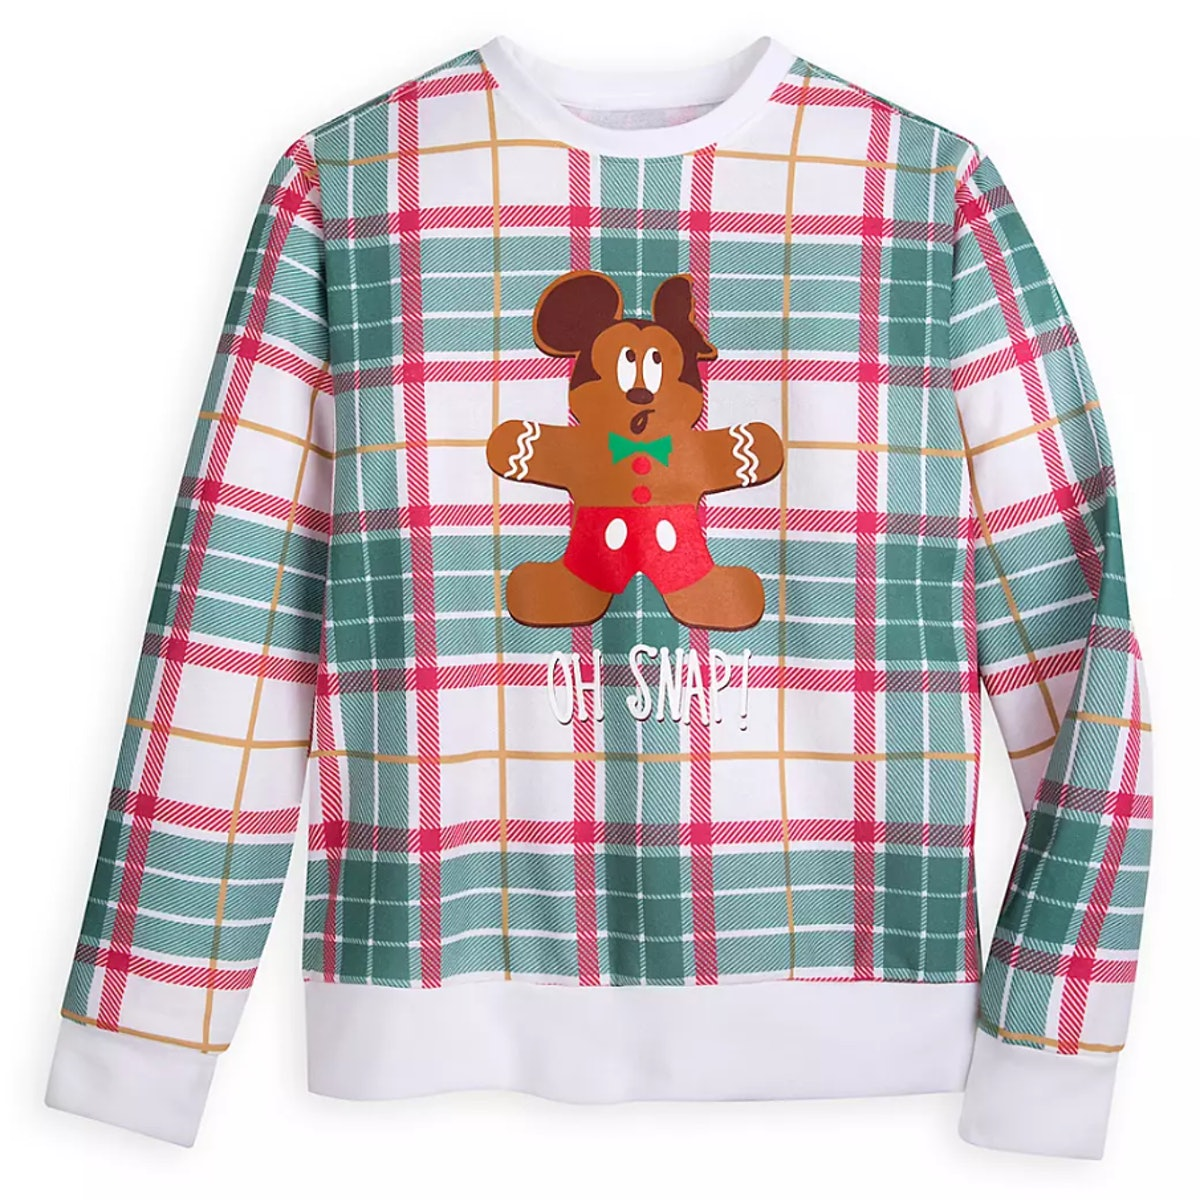 Mickey Mouse Holiday Plaid Sweatshirt for Adults